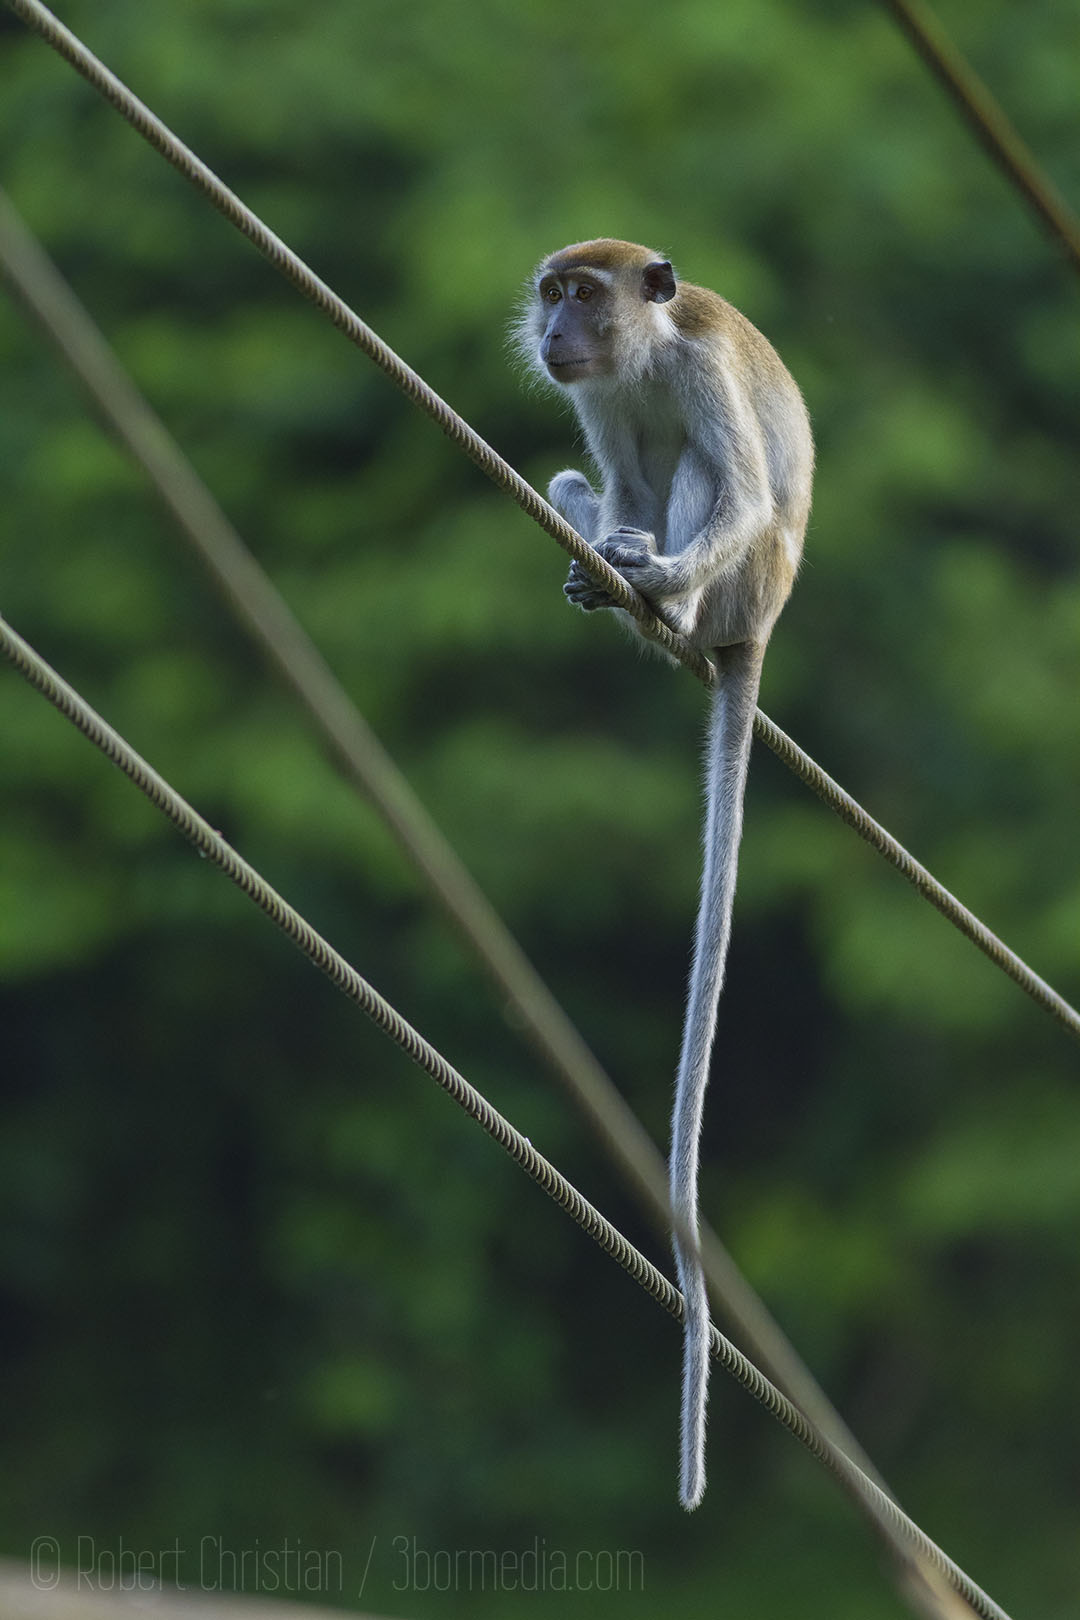 Long-Tailed Macaque on the bridge cables